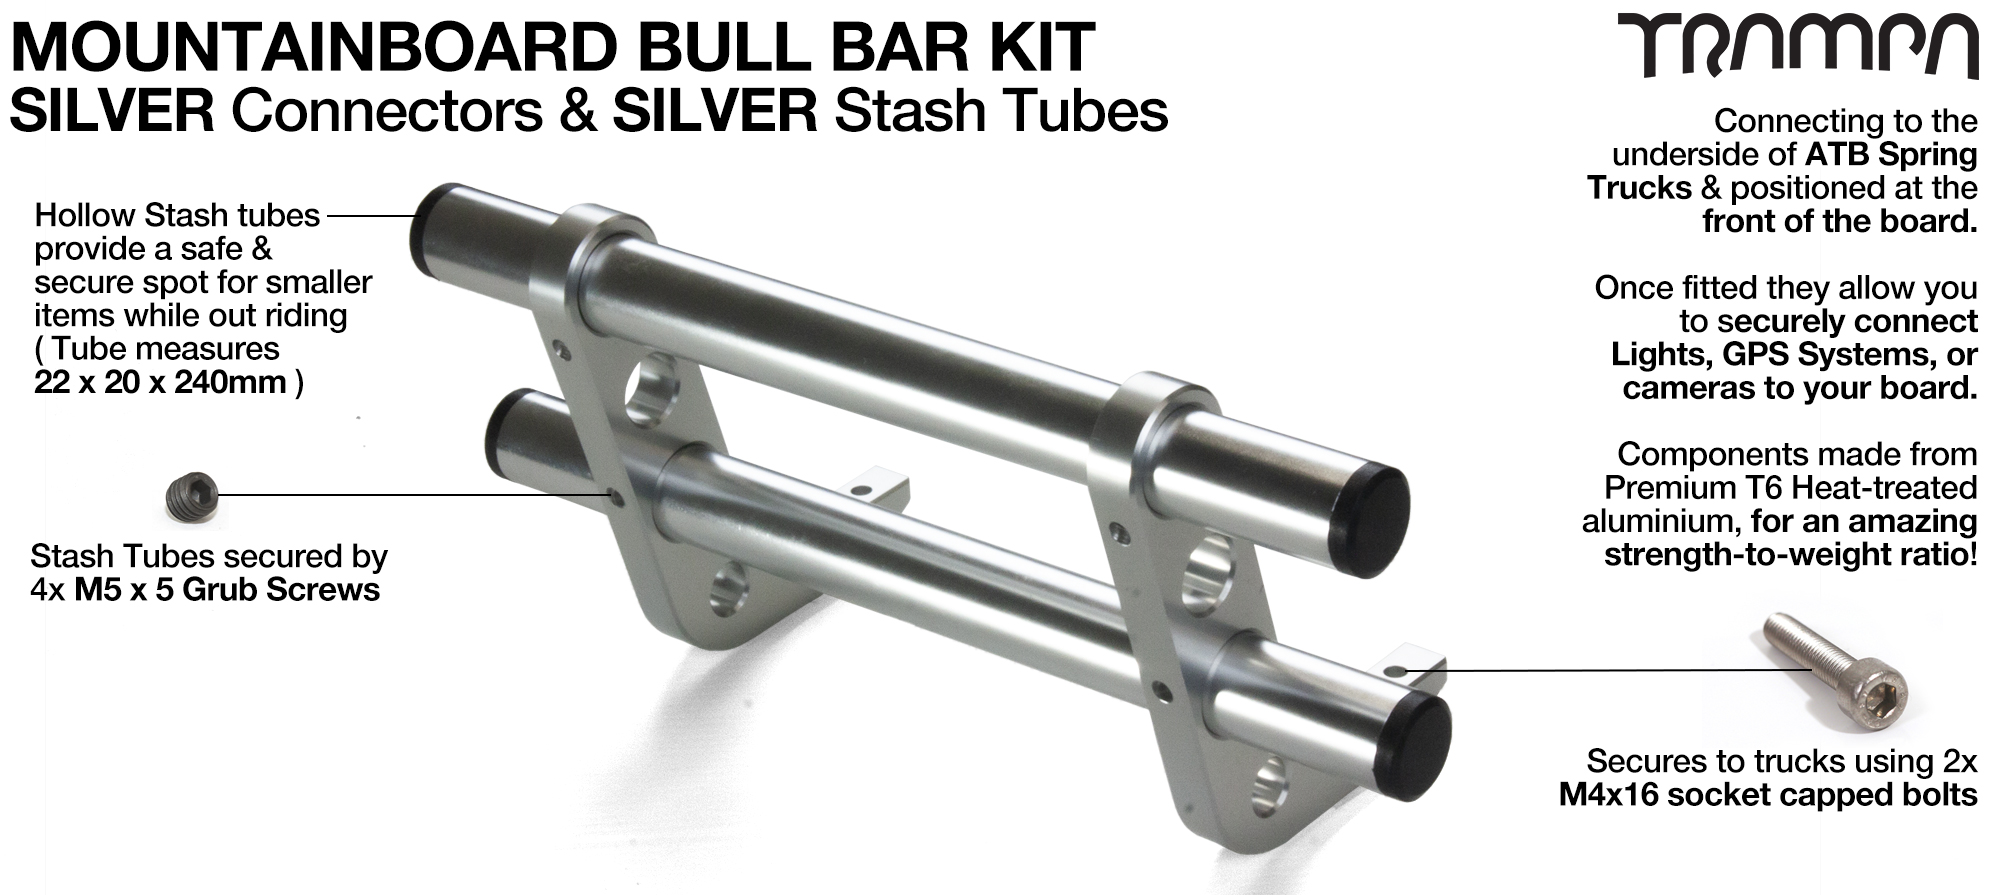 BLACK Uprights & SILVER Crossbar BULL BARS for MOUNTAINBOARDS using T6 Heat Treated CNC'd Aluminum Clamps, Hollow Aluminium Stash Tubes with Rubber end bungs